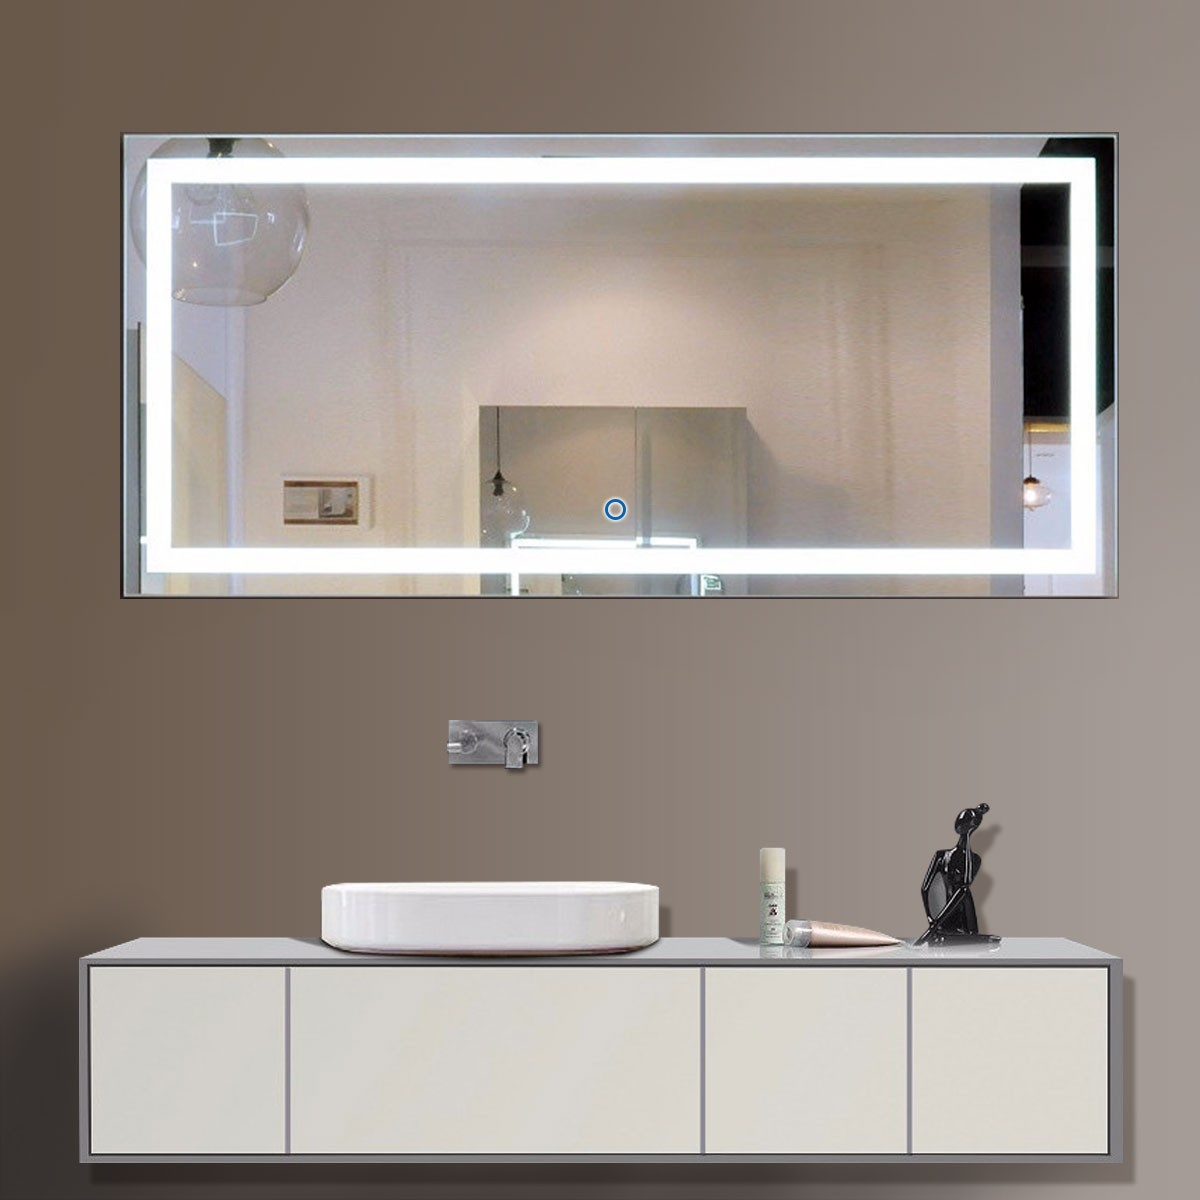 60 X 28 In Horizontal Led Bathroom Silvered Mirror With Touch Button Dk Od Ck010 C